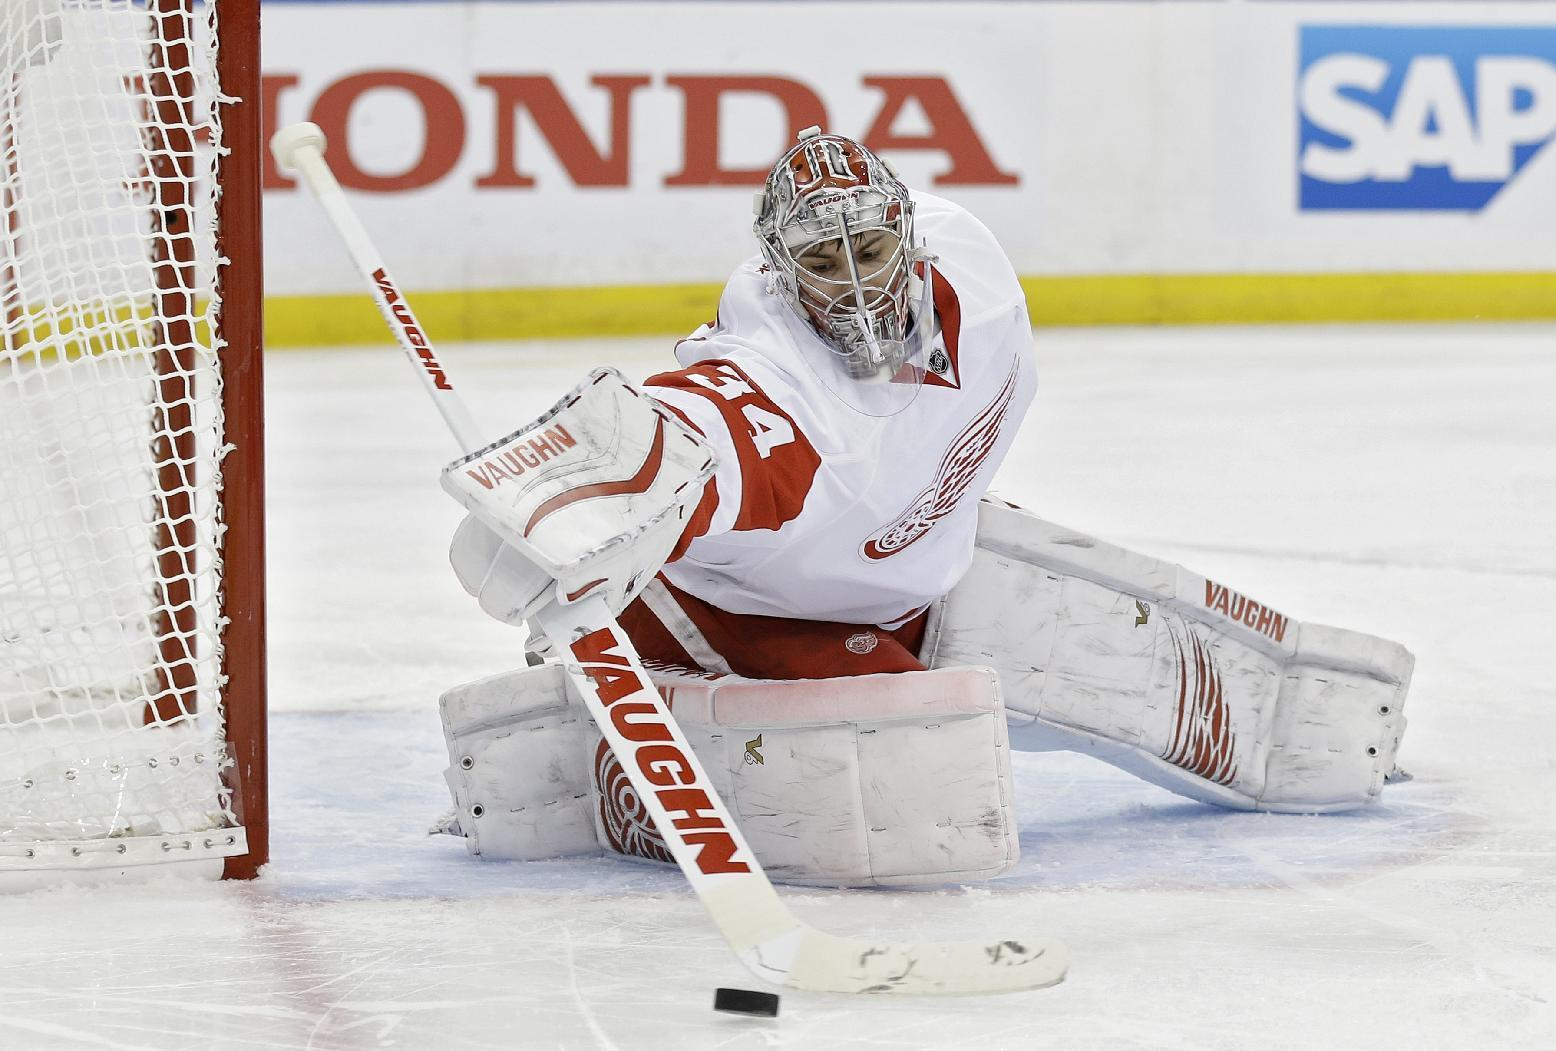 Petr Mrazek shows good side in shutout win over Tampa